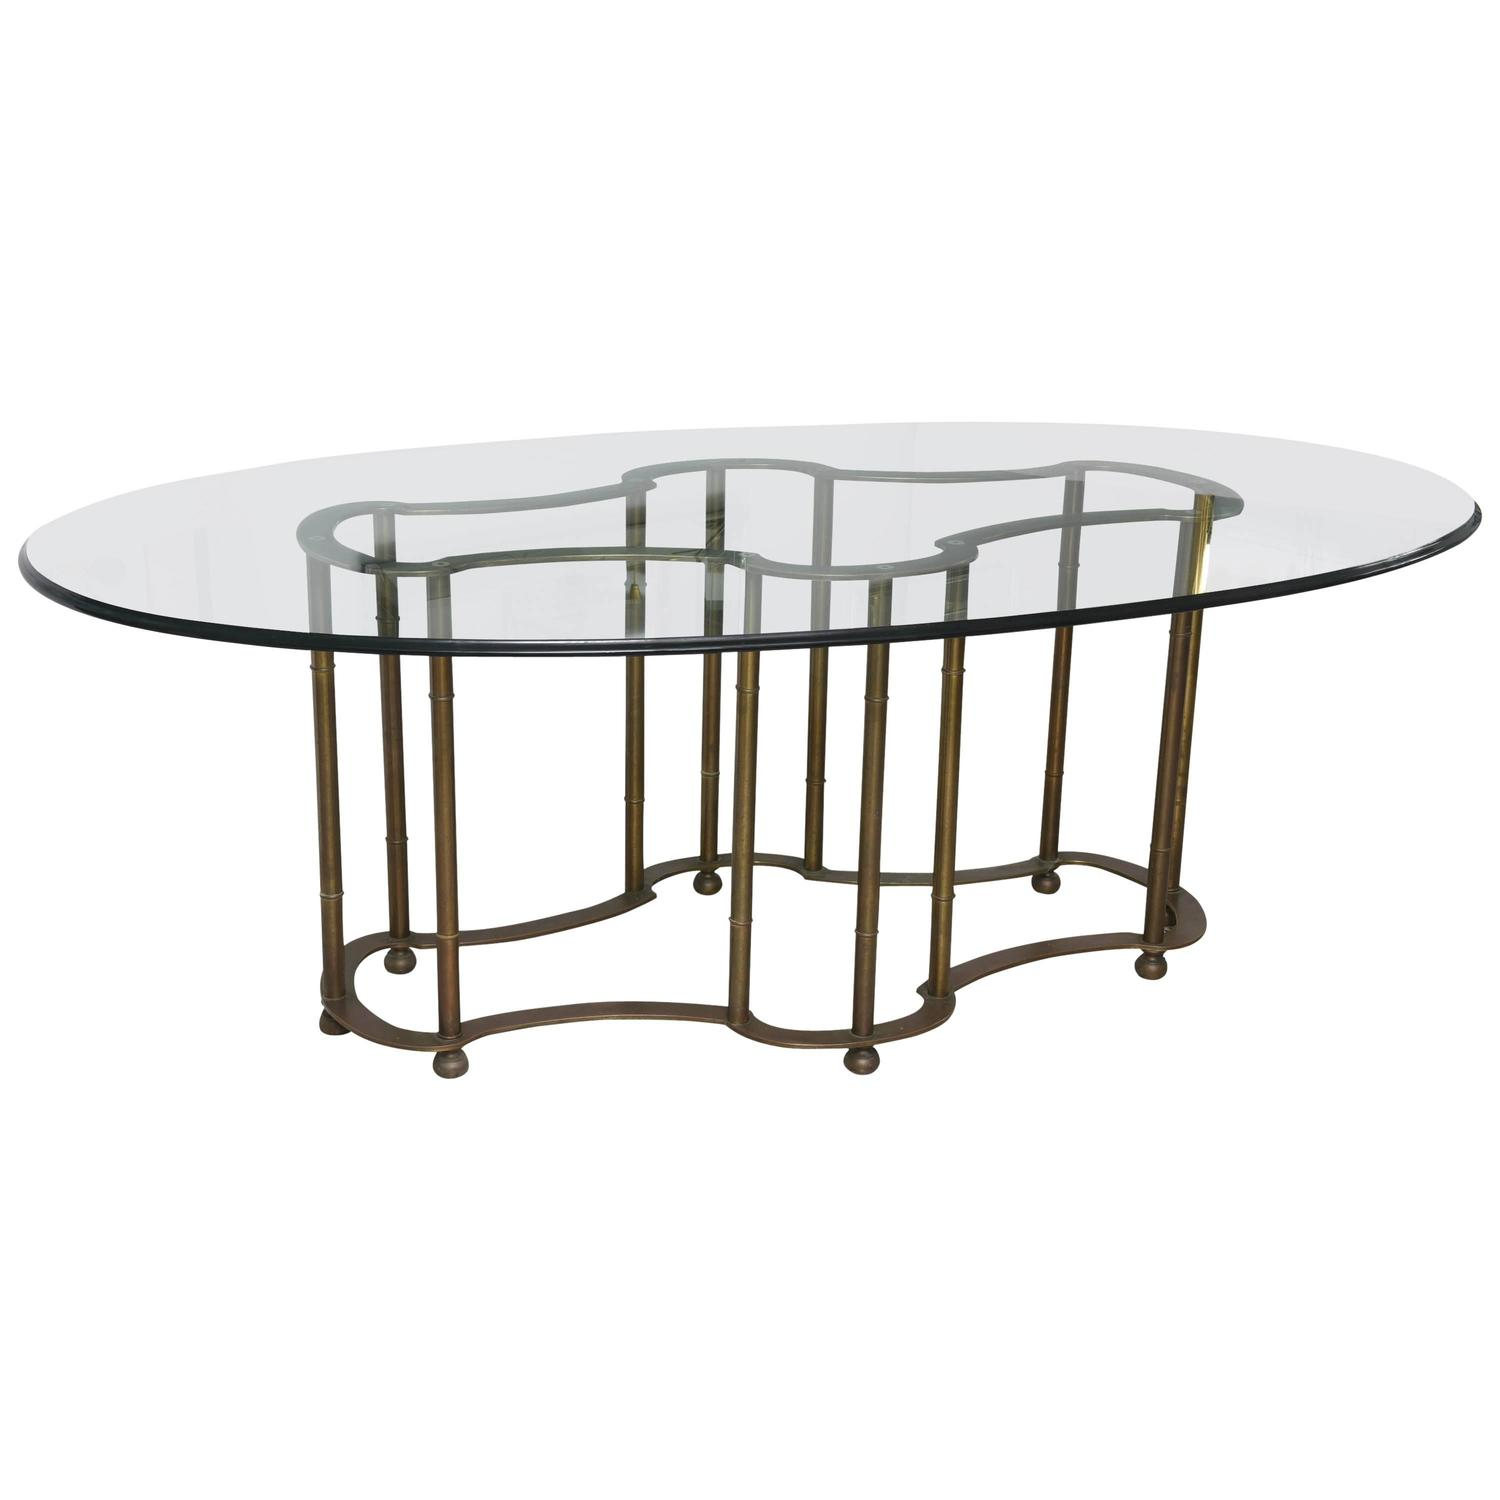 Mastercraft Hollywood Regency Race Track Dining Table Brass Faux